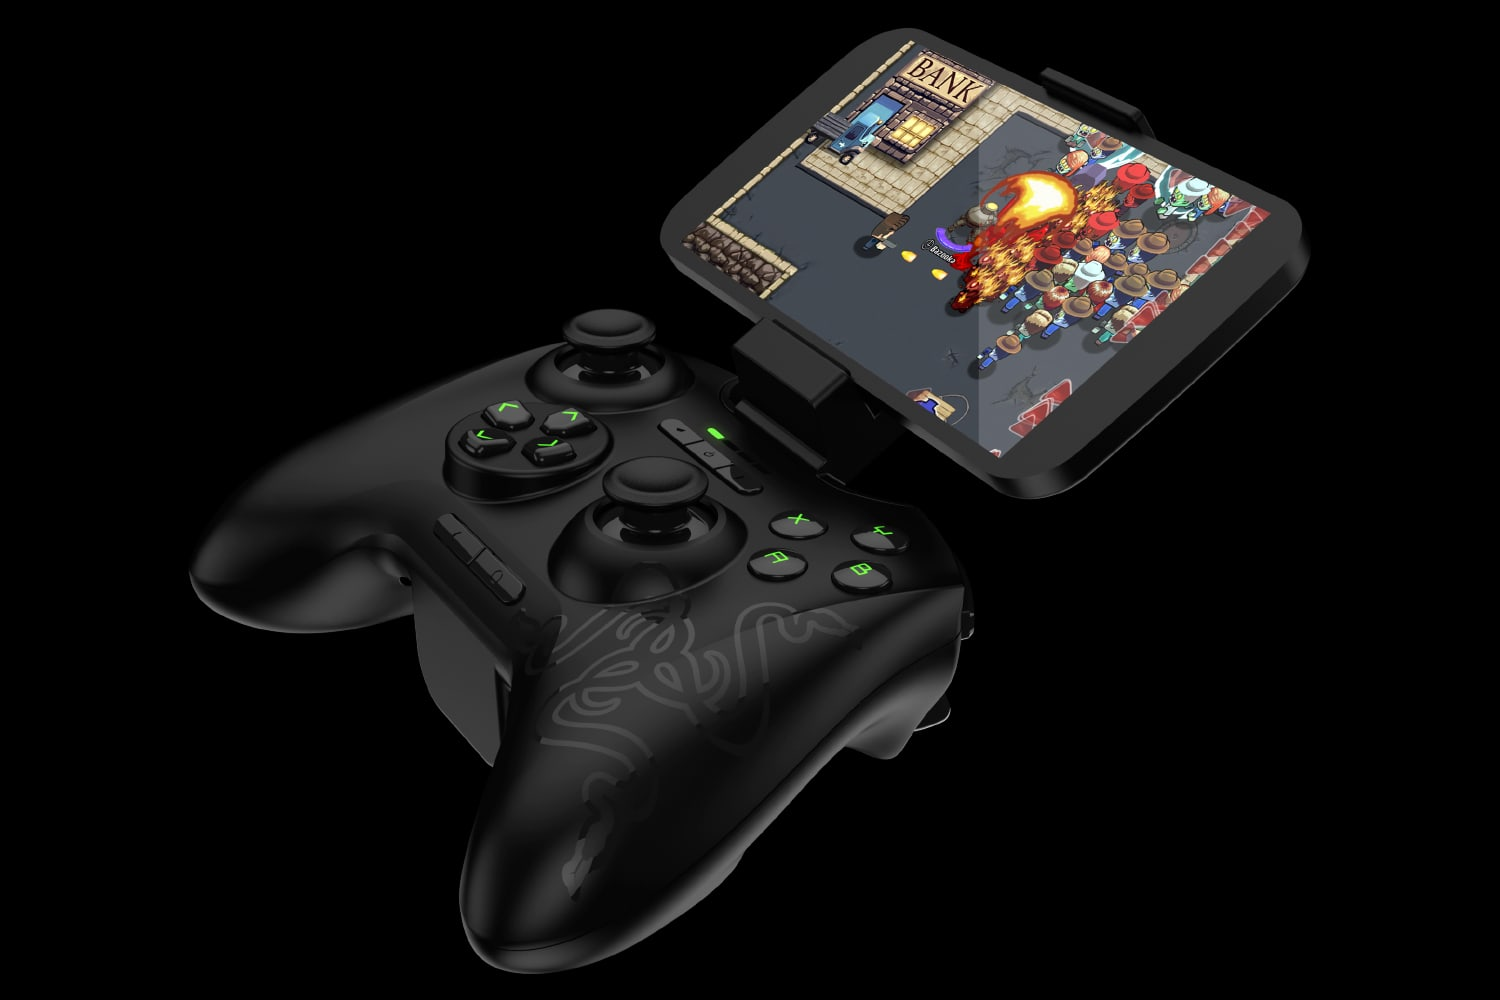 Razer's Android gamepad is now on Google Play for $80